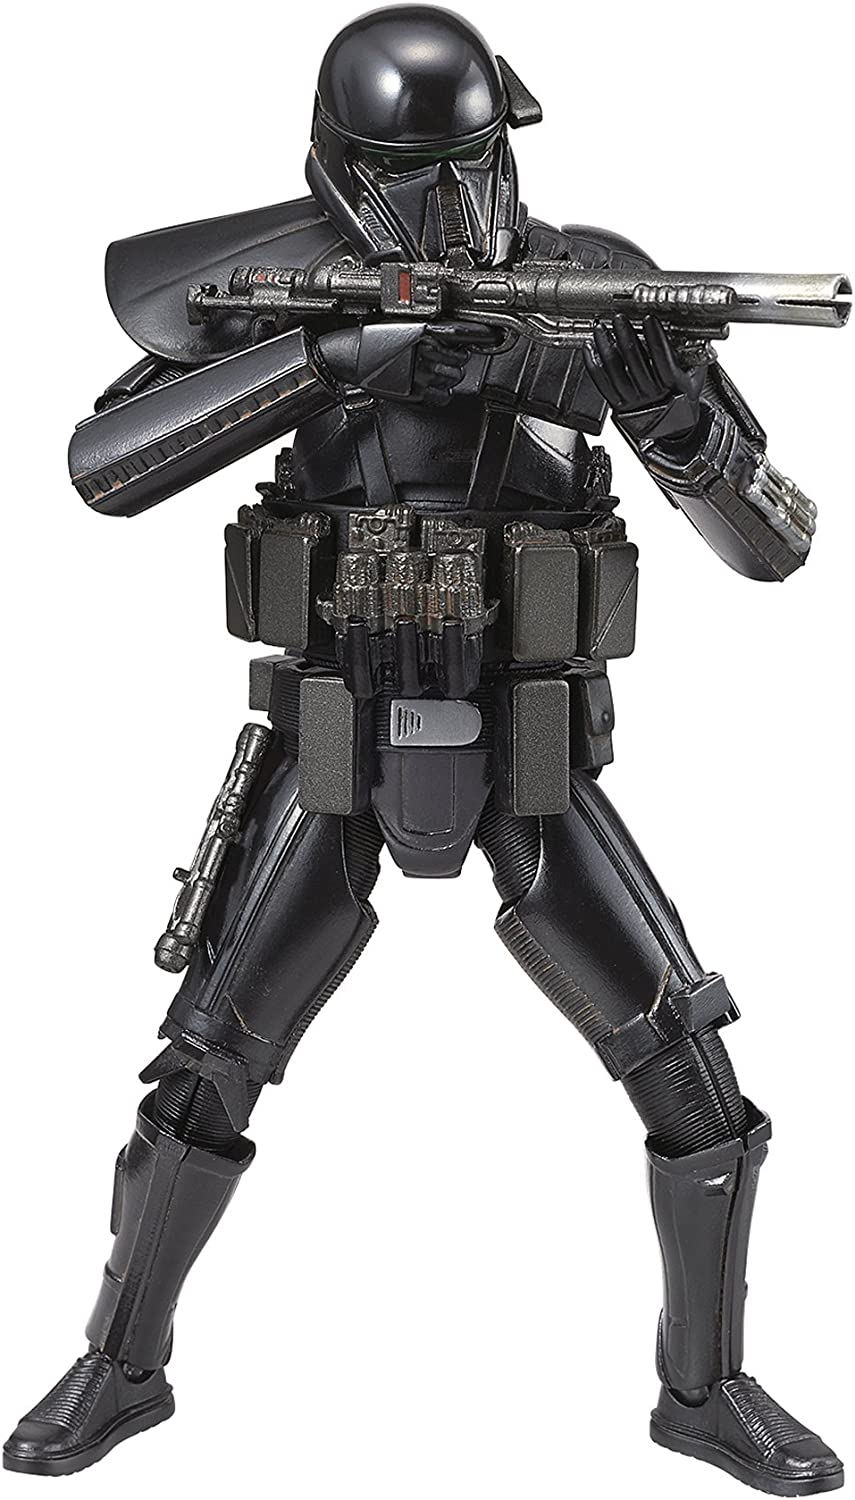 Maqueta BANDAI STAR WARS ROGUE ONE Escala 1/12 DEATH TROOPER modelismo [Necesario el montaje] Importación Japonesa